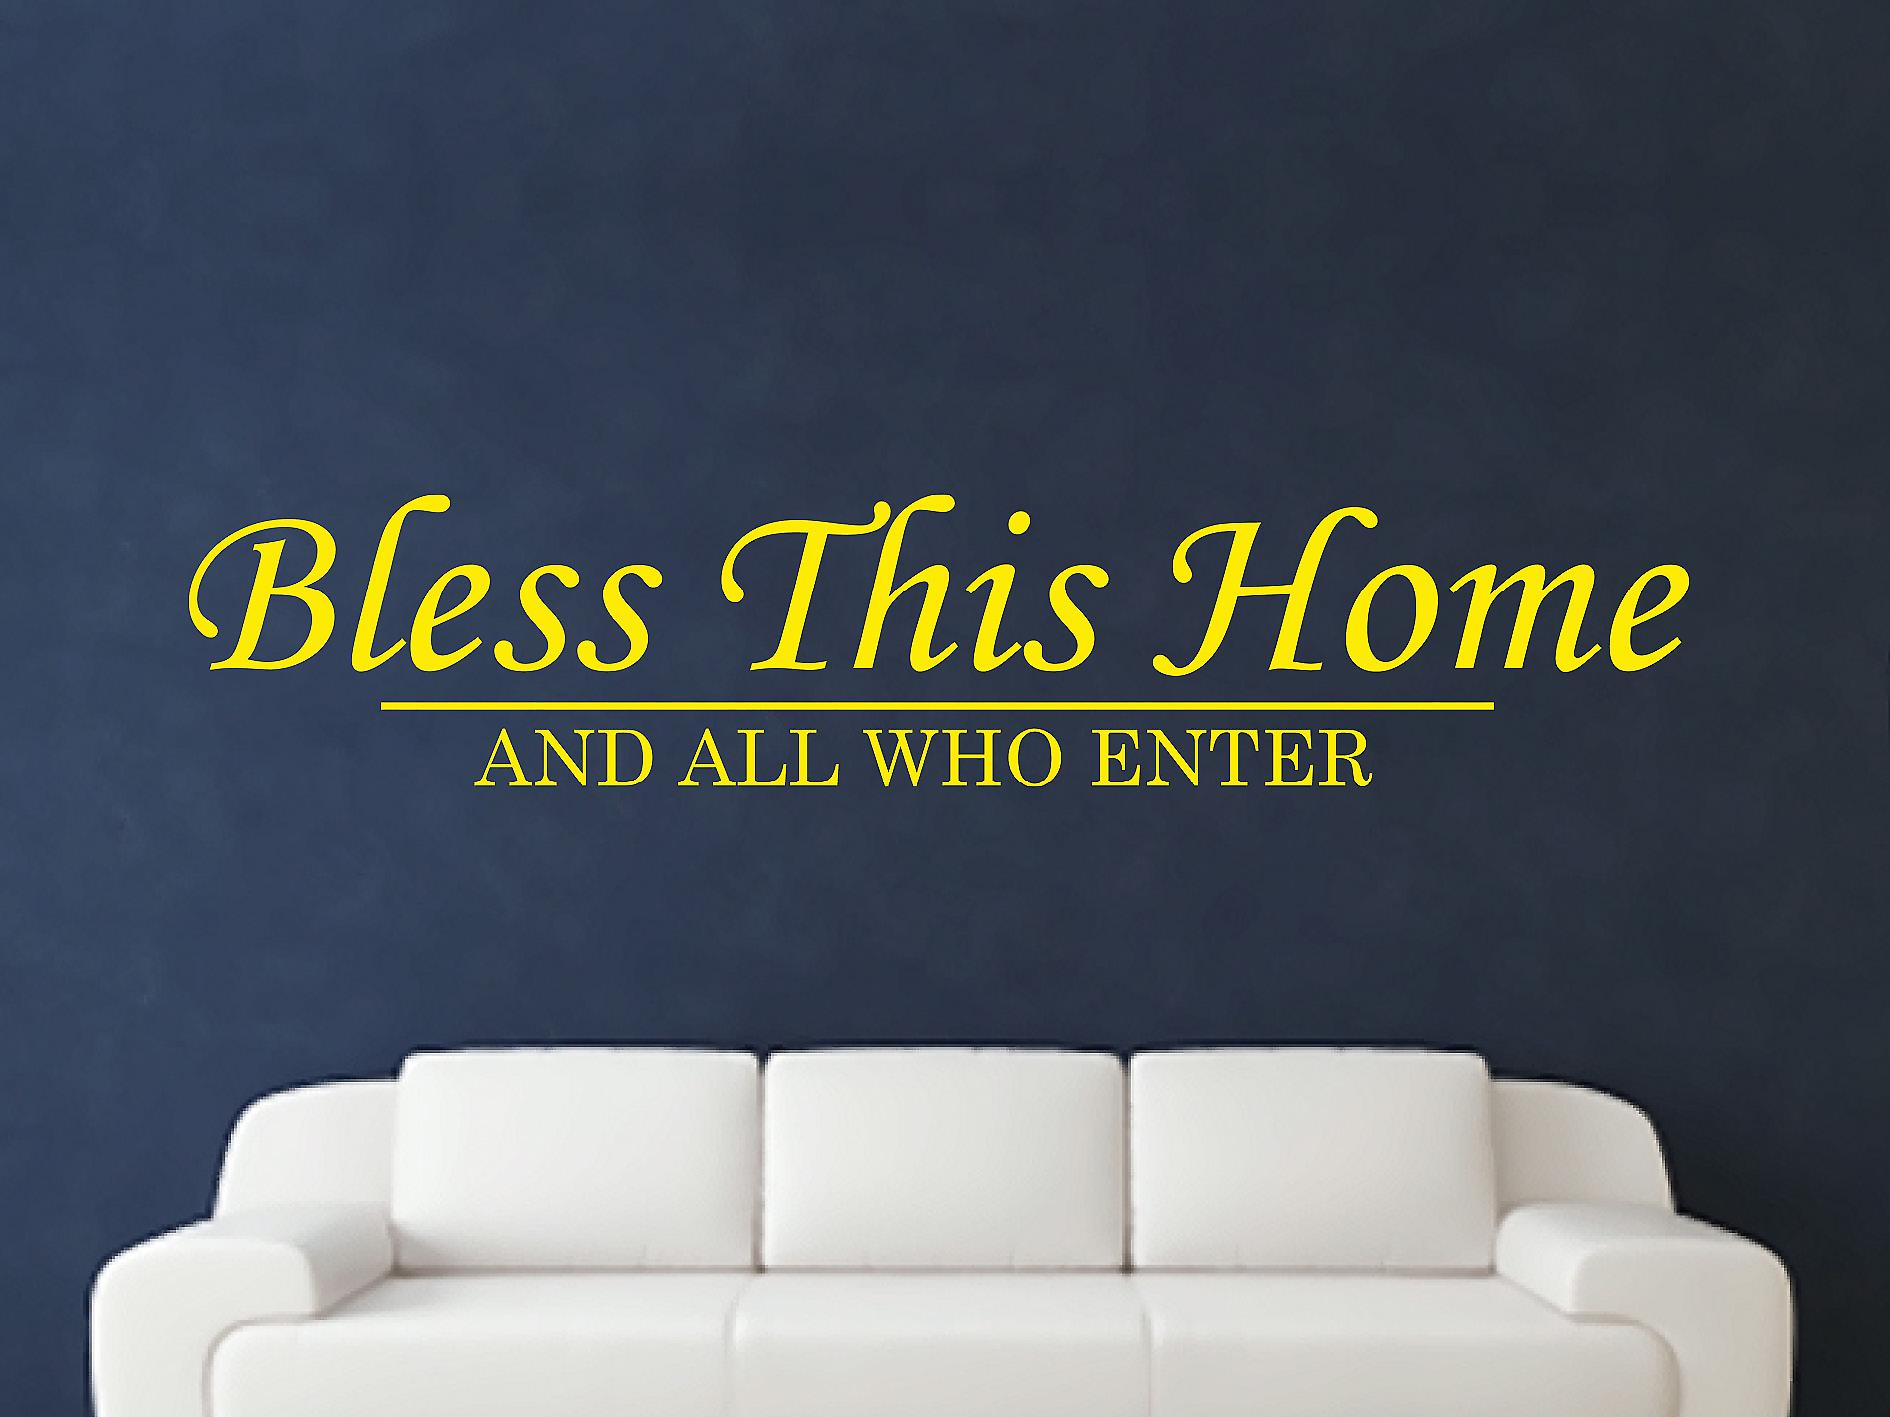 Bless This Home Wall Art Sticker - Bright Yellow